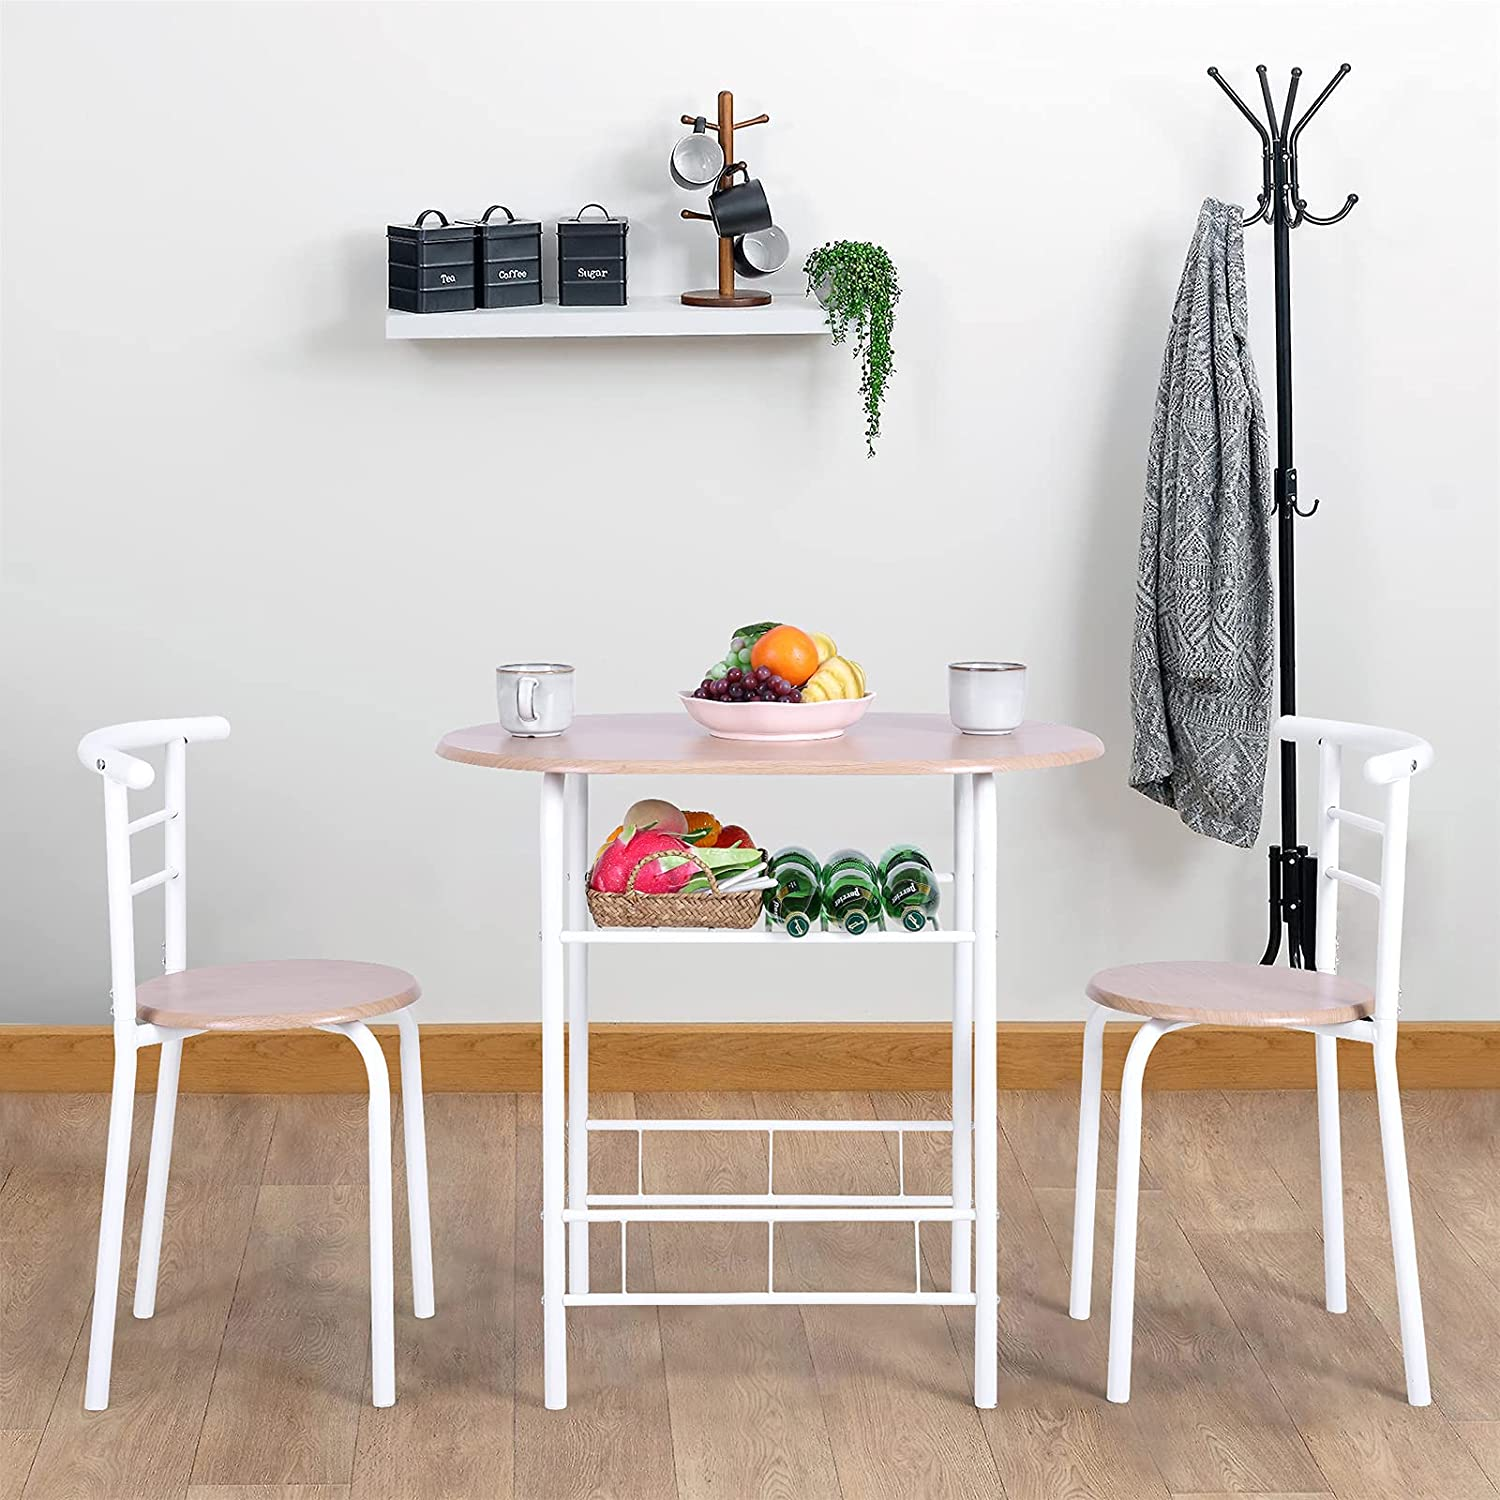 MAISON ARTS 9 Piece Round Dining Room Table Set for 9 Space Saving Small  Dining Table with 9 Chairs for Kitchen, Dining Room, Breakfast,Compact  Space ...